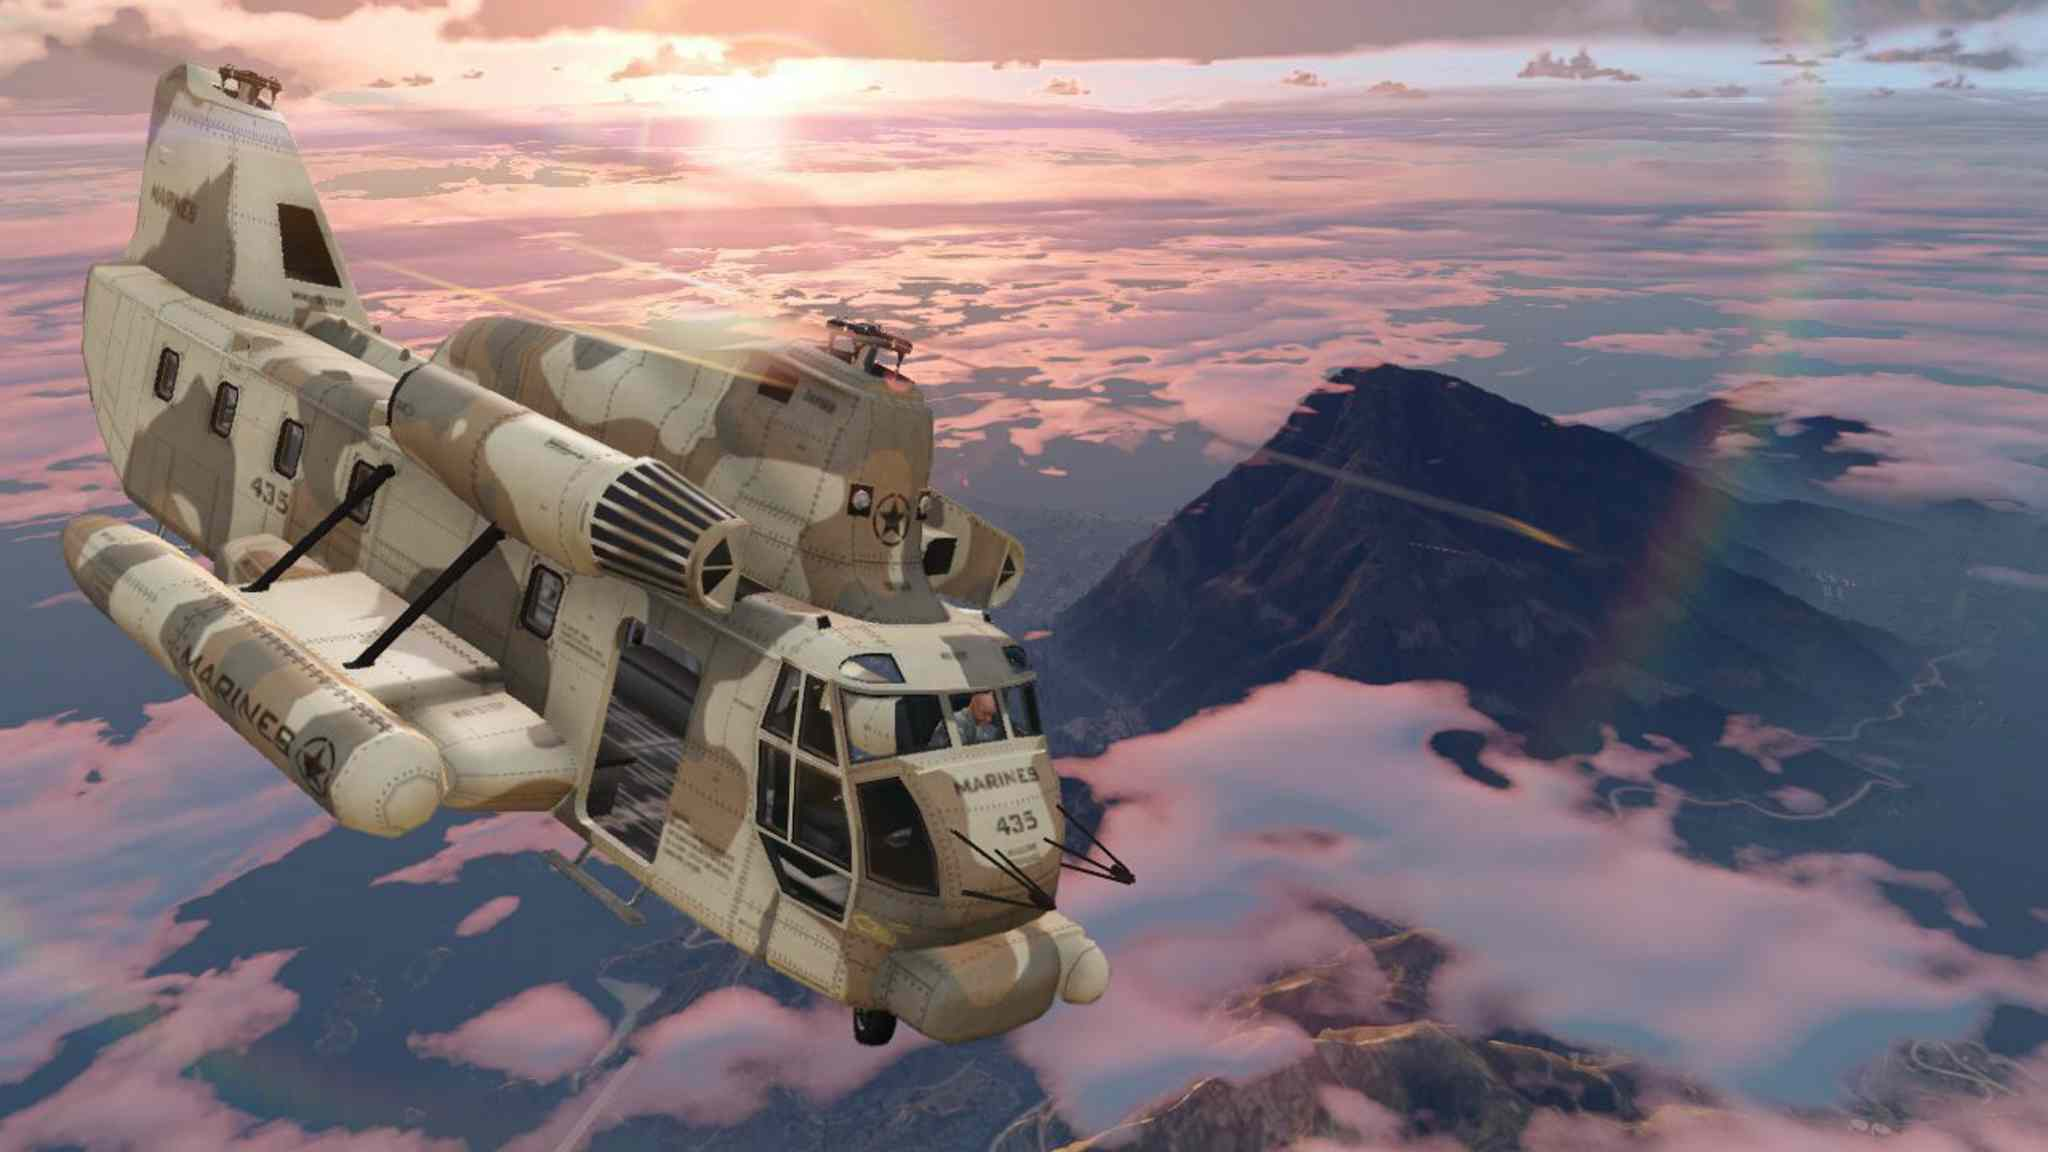 A screen shot from the wildly popular Grand Theft Auto V video game.